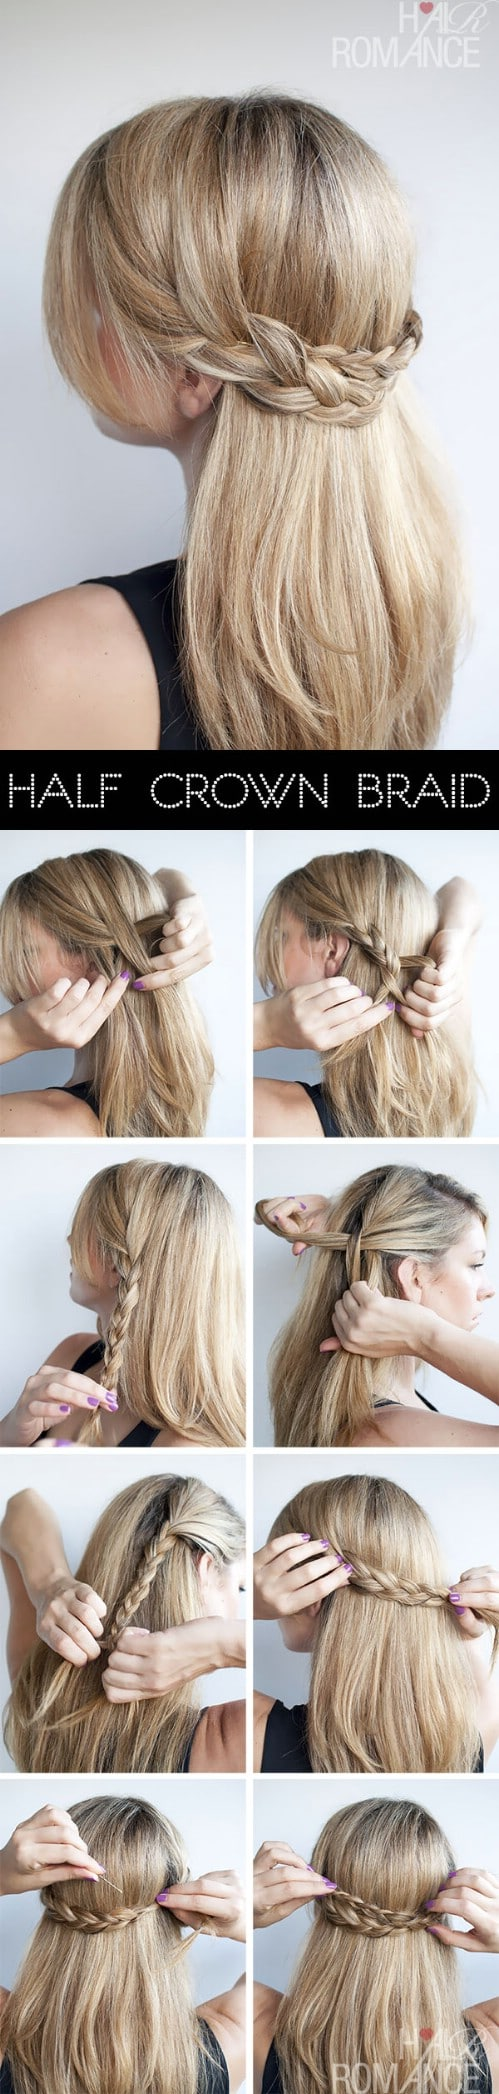 20 Gorgeous 5 Minute Hairstyles To Save You Some Snooze Time DIY